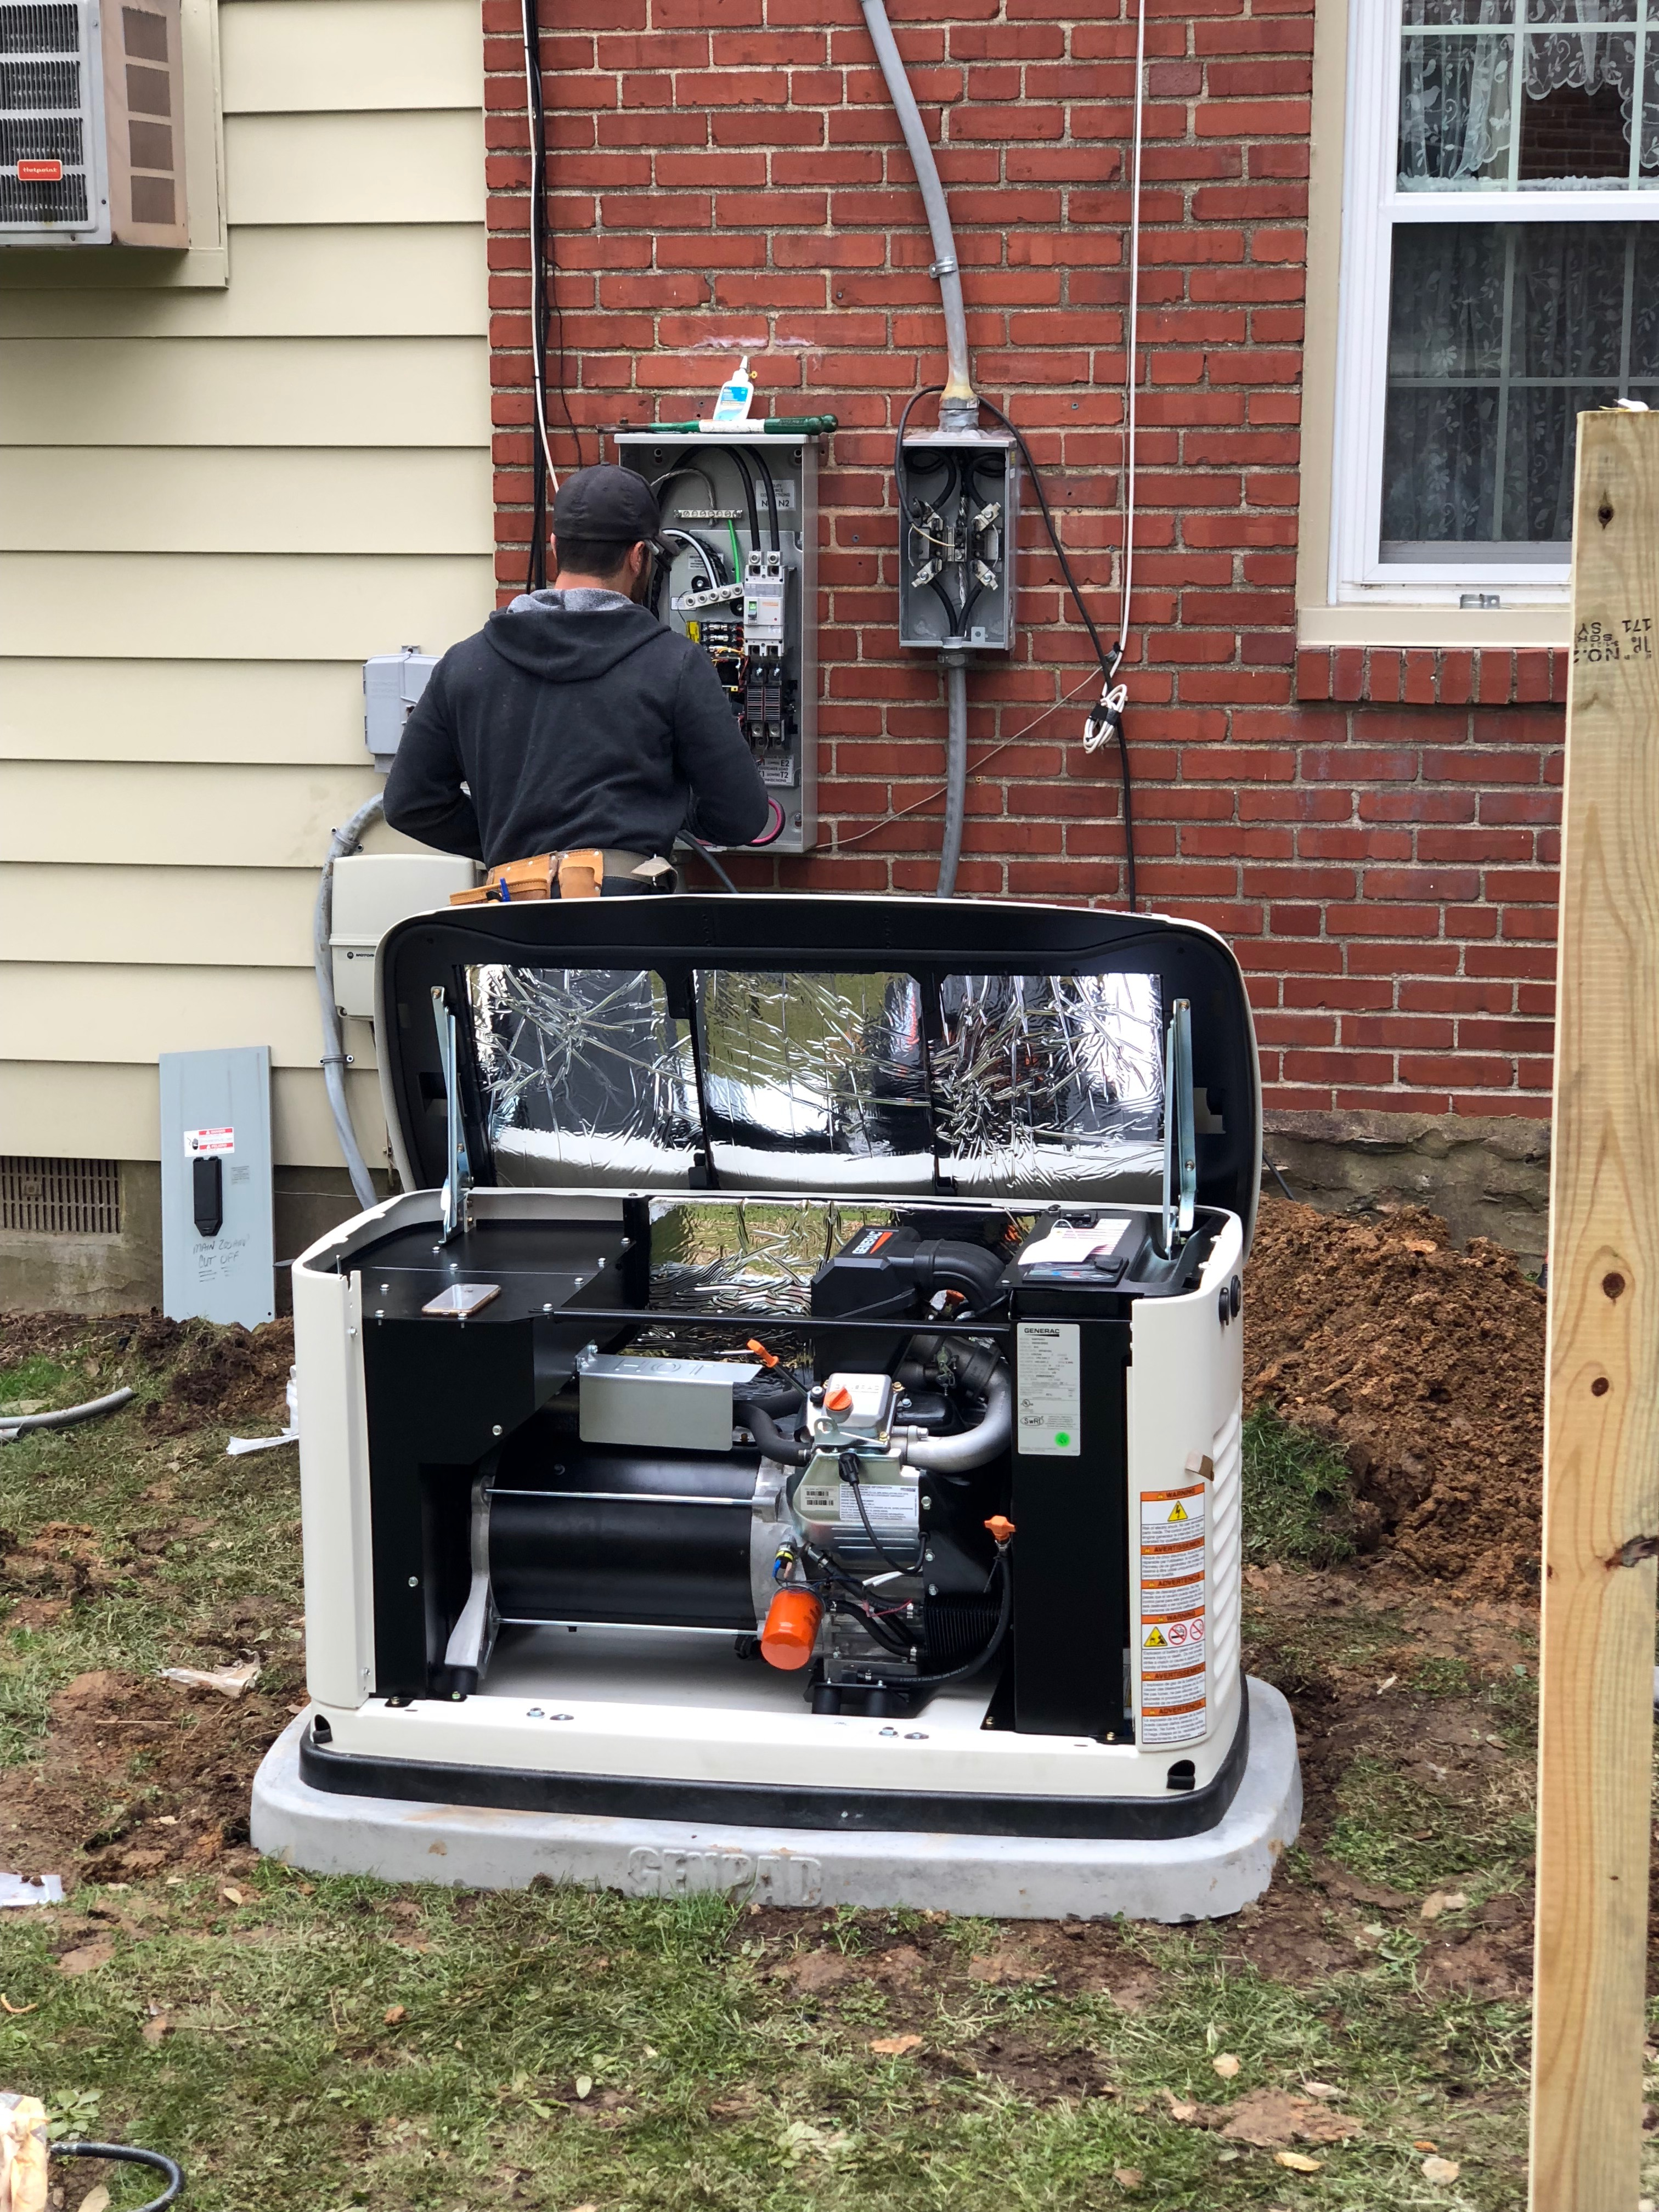 Gallery View Our Work Emergency Generators And Backup Generator Power Installation Standby